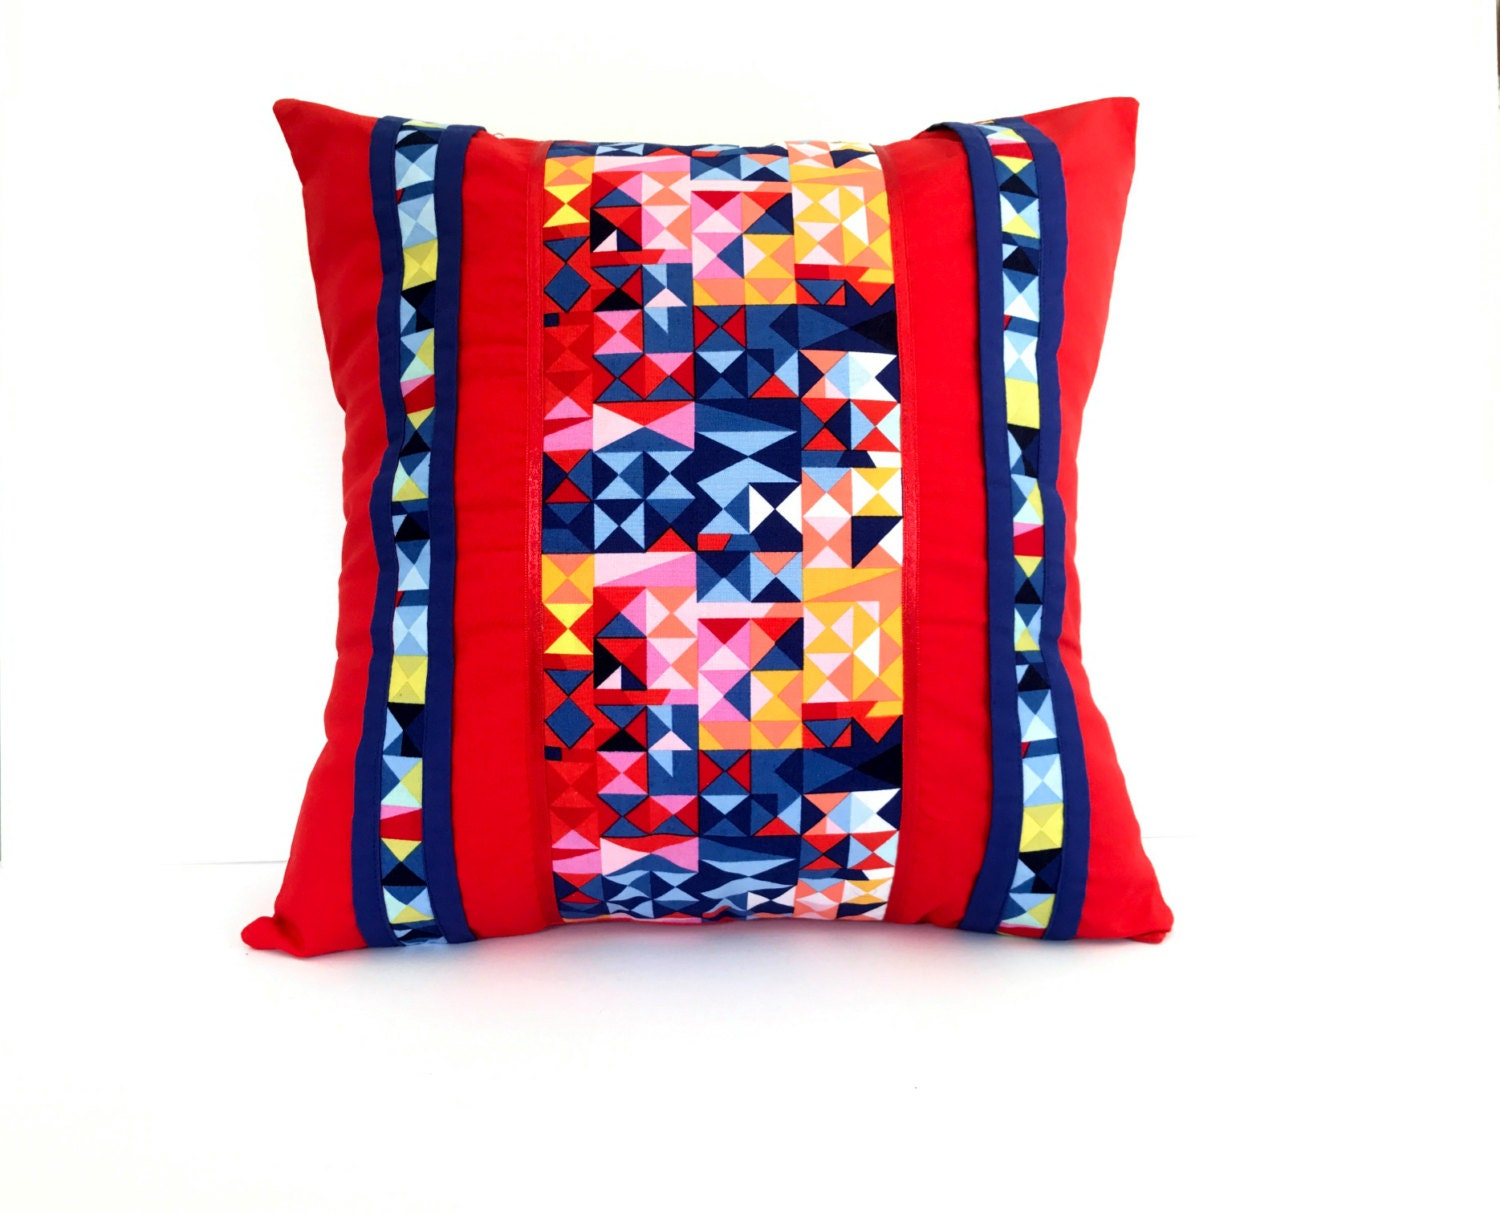 Throw Pillow Cover Measurements : Red Geometric Decorative Pillow Cover Size 16 x